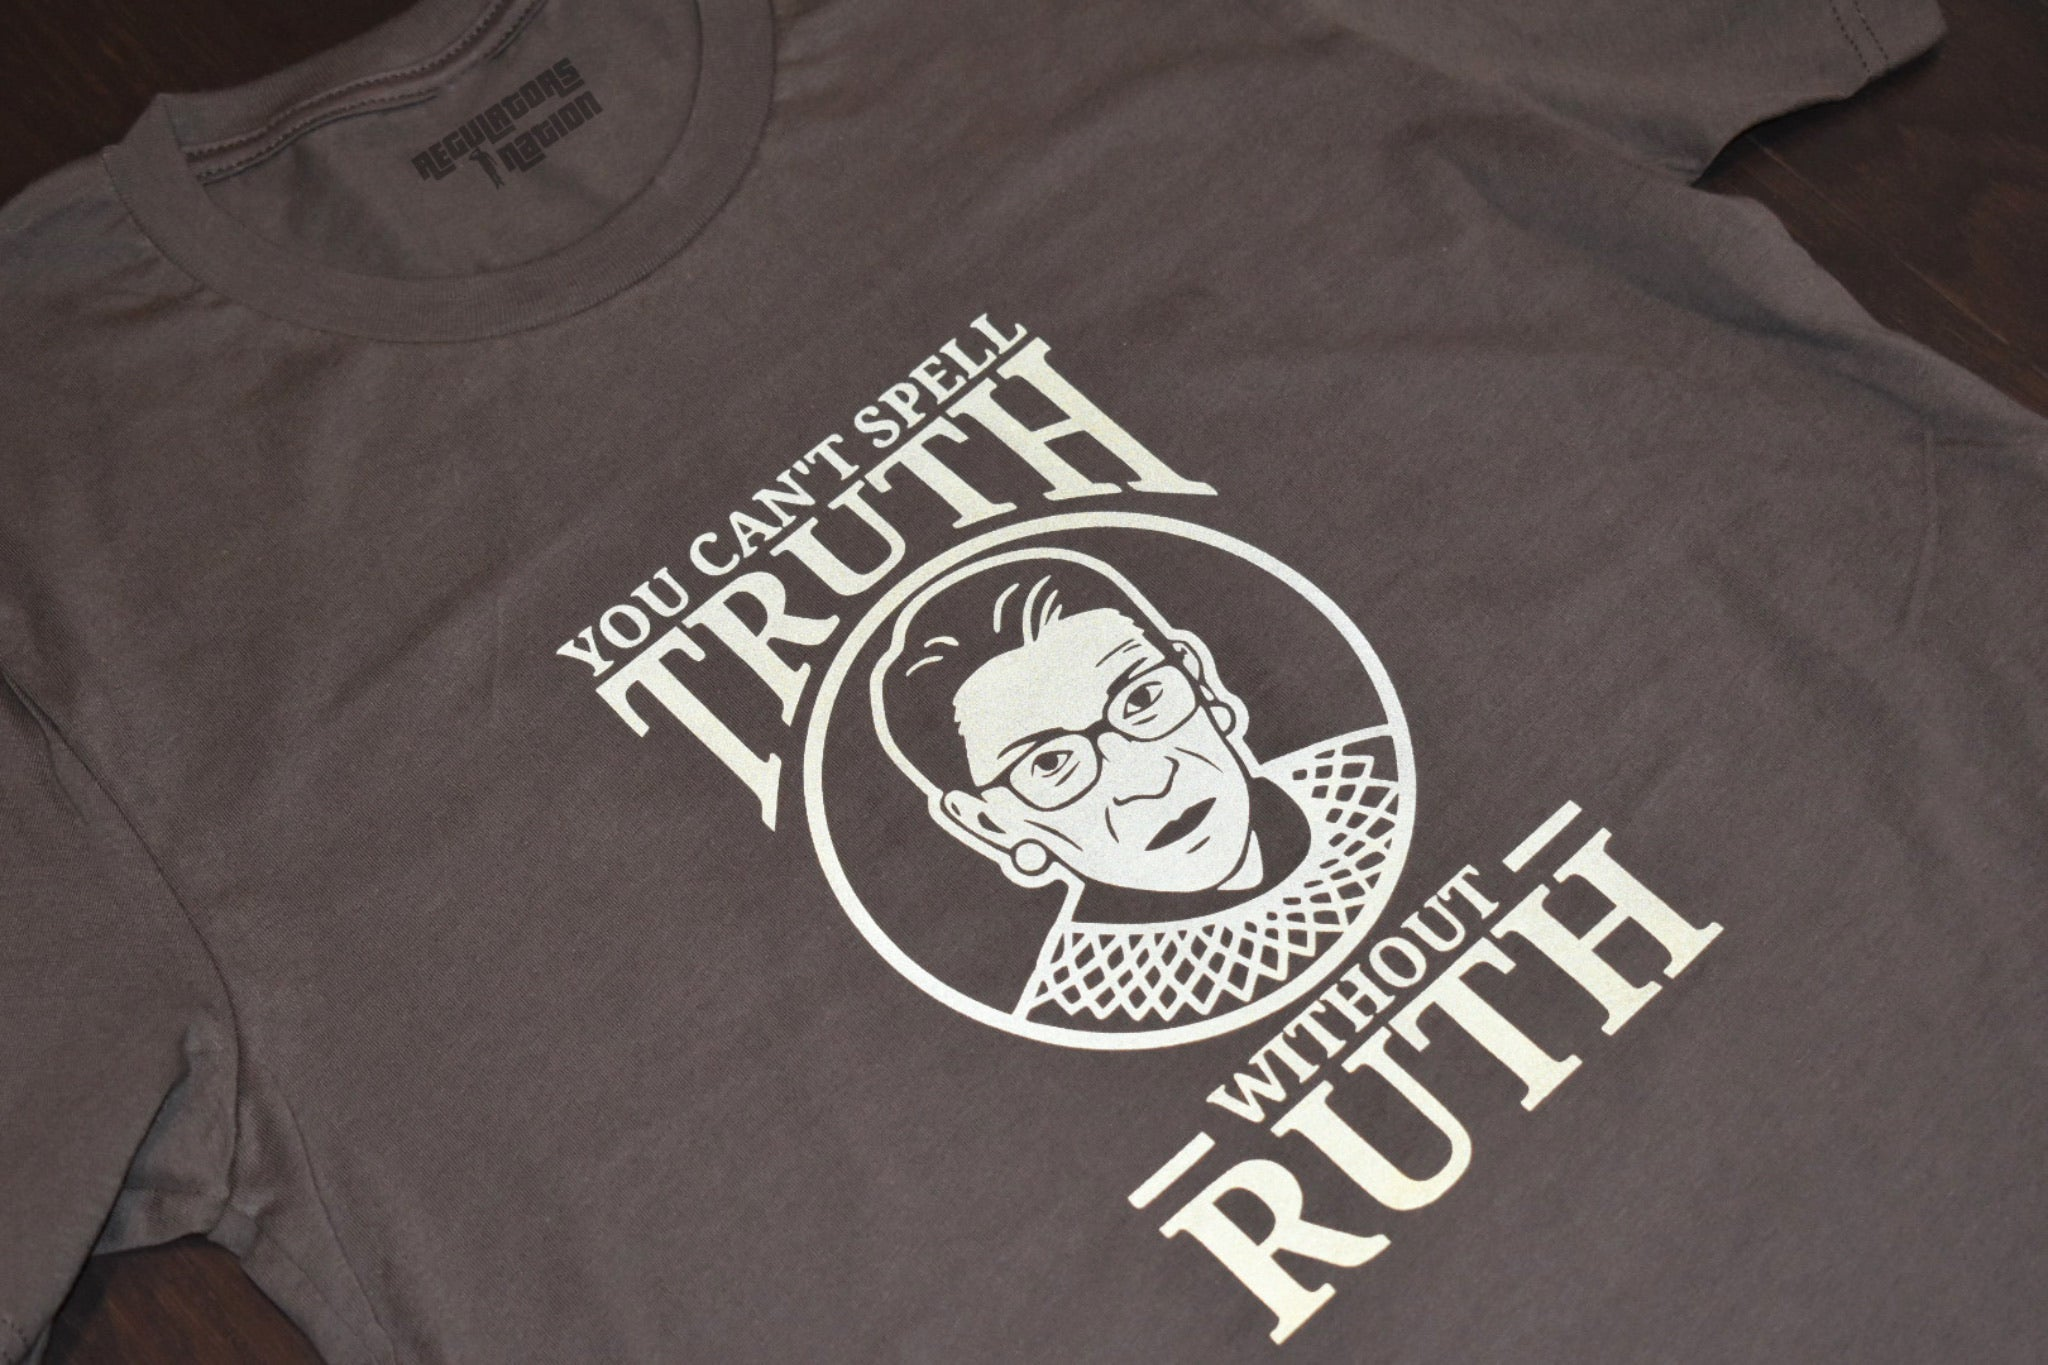 """YOU CAN'T SPELL TRUTH WITHOUT THE RUTH"""